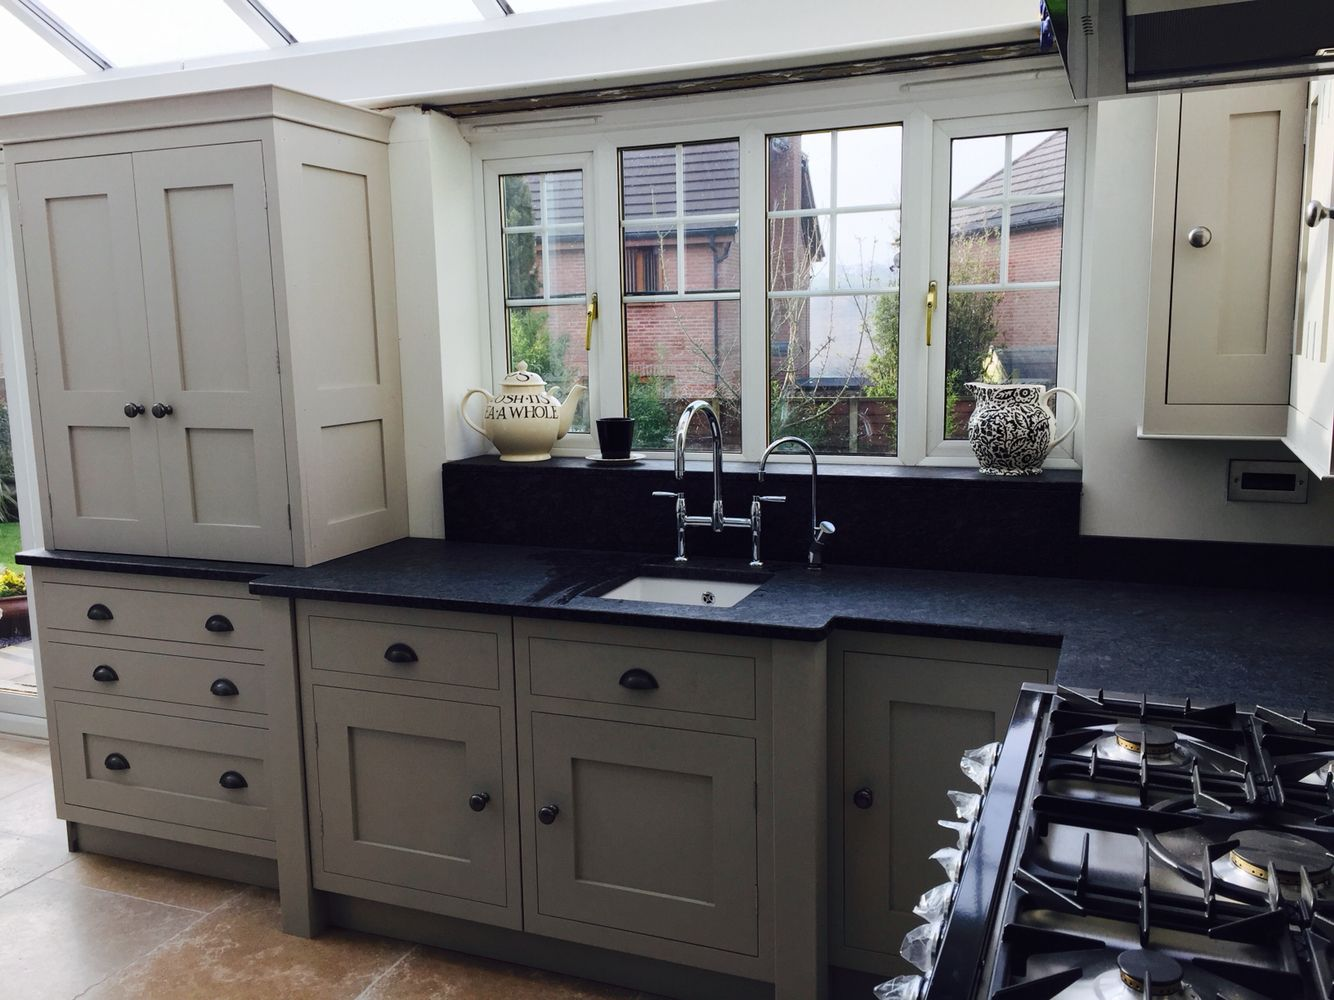 Best Hand Panted Kitchen Farrow And Ball Purbeck Stone Farrow 400 x 300